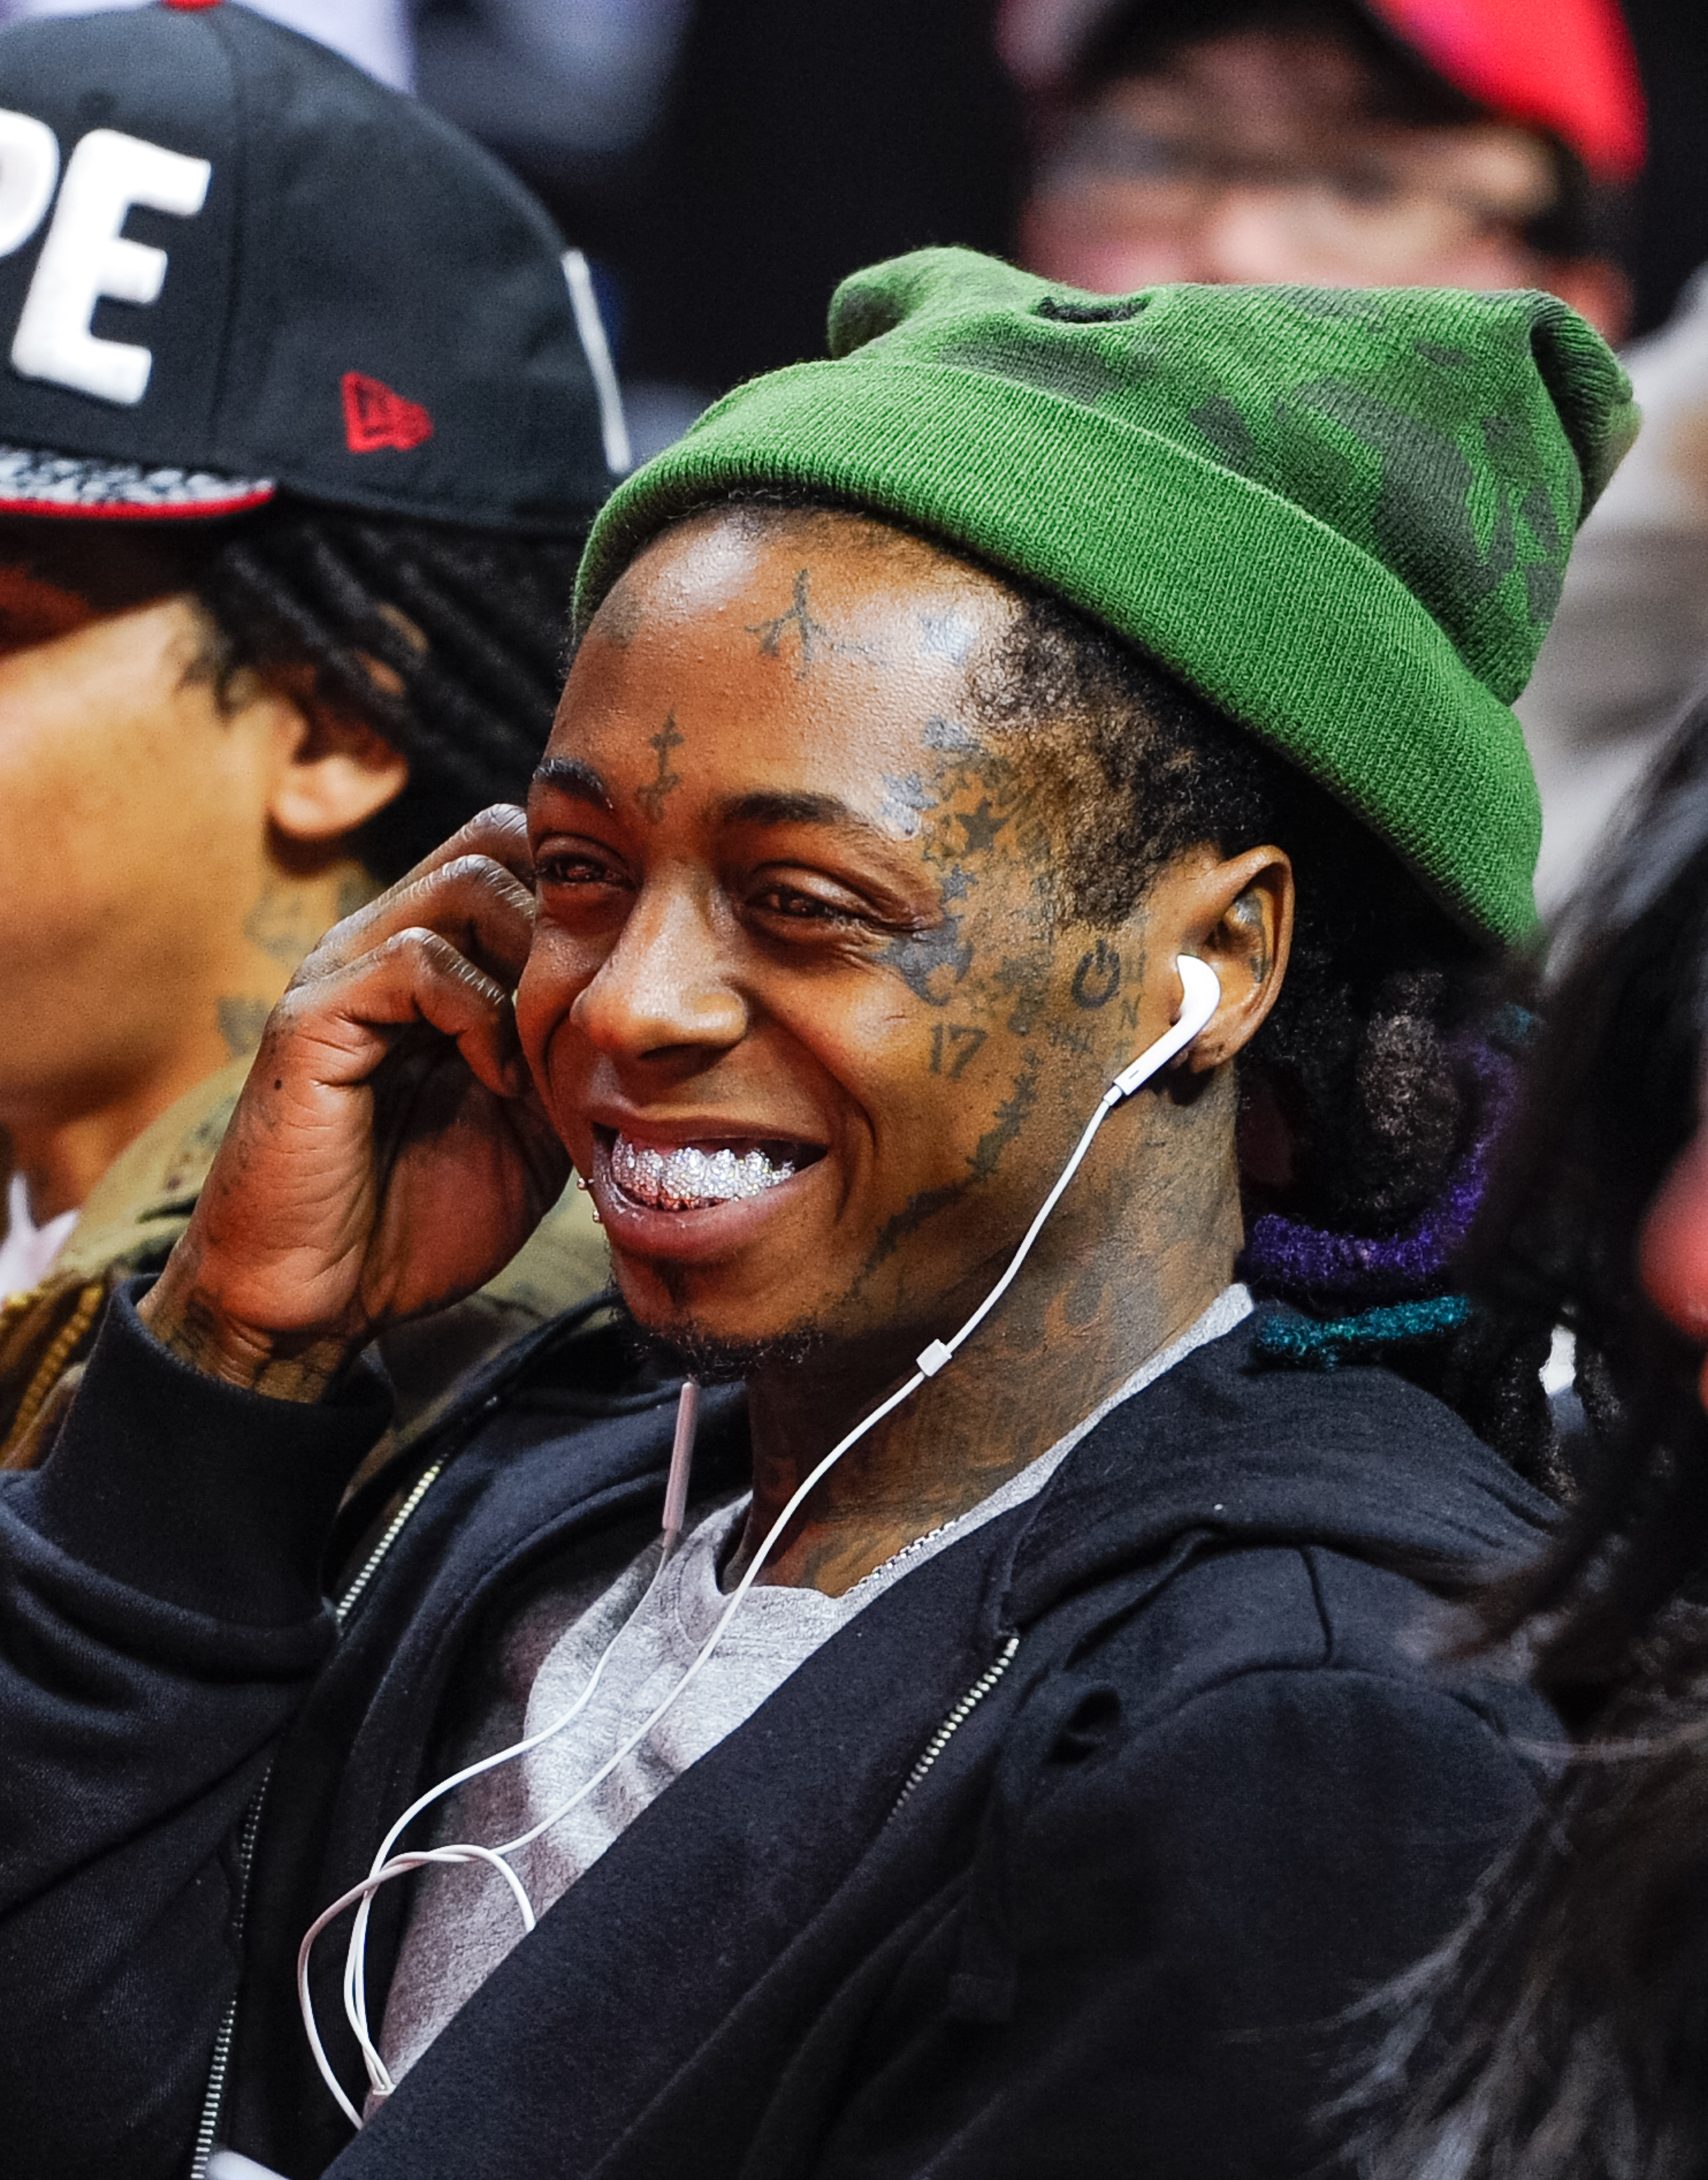 Lil Wayne attends a basketball game between the Indiana Pacers and the Los Angeles Clippers at Staples Center on Dec. 17, 2014 in Los Angeles, Calif.